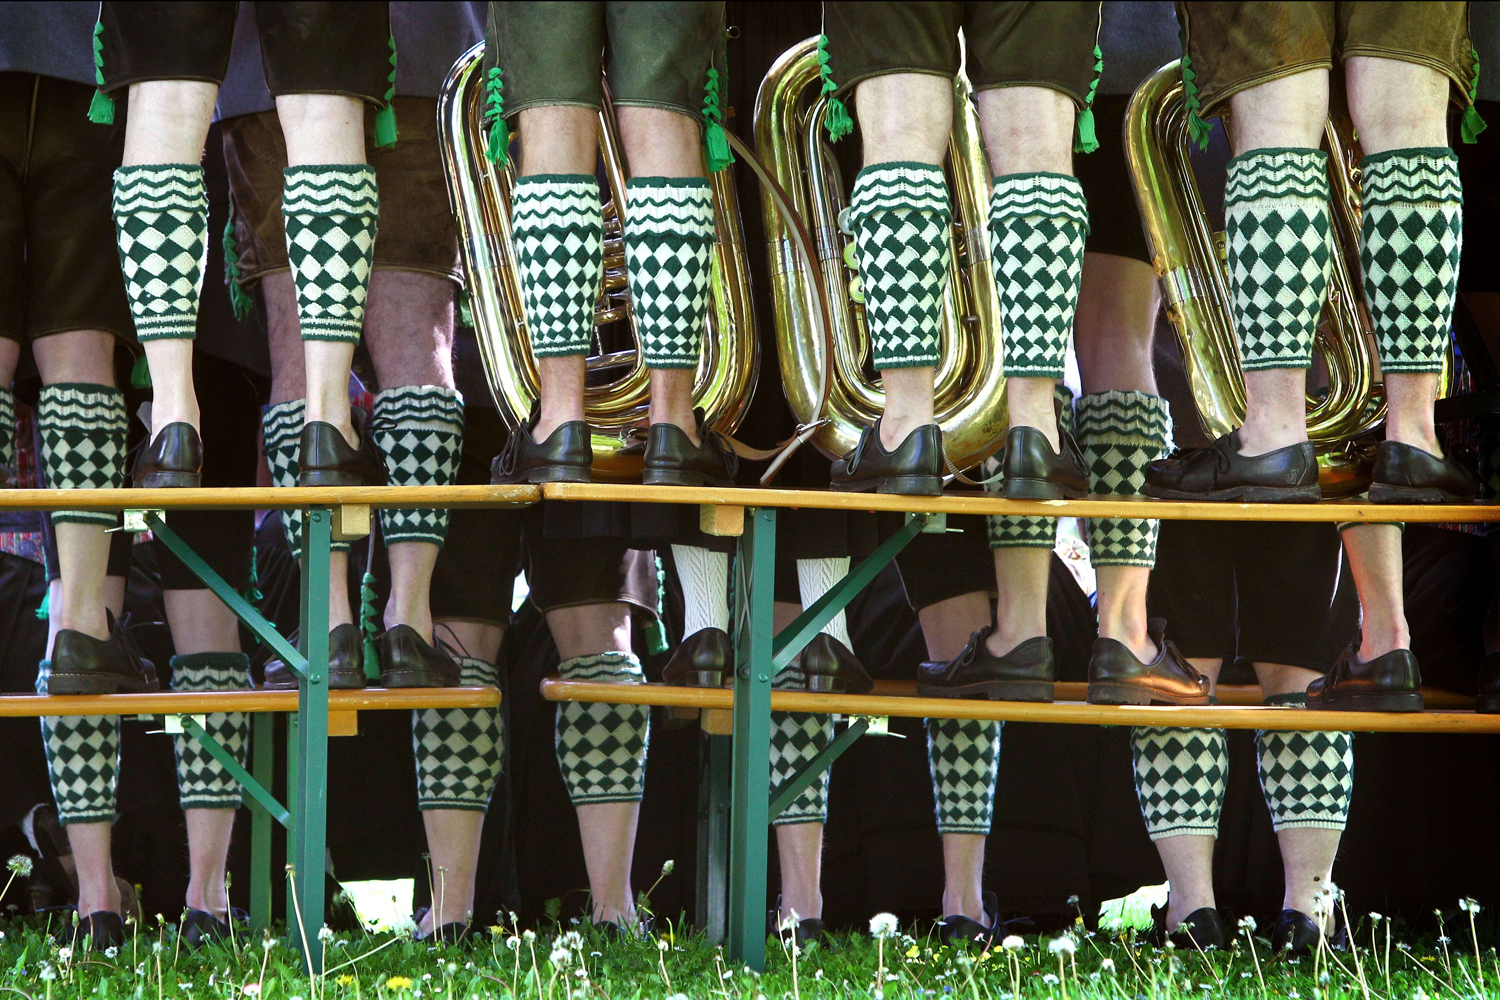 May 1, 2014. Members of a music band wear traditional Bavarian dresses as they pose for a group picture in Garmisch-Partenkirchen, southern Germany.